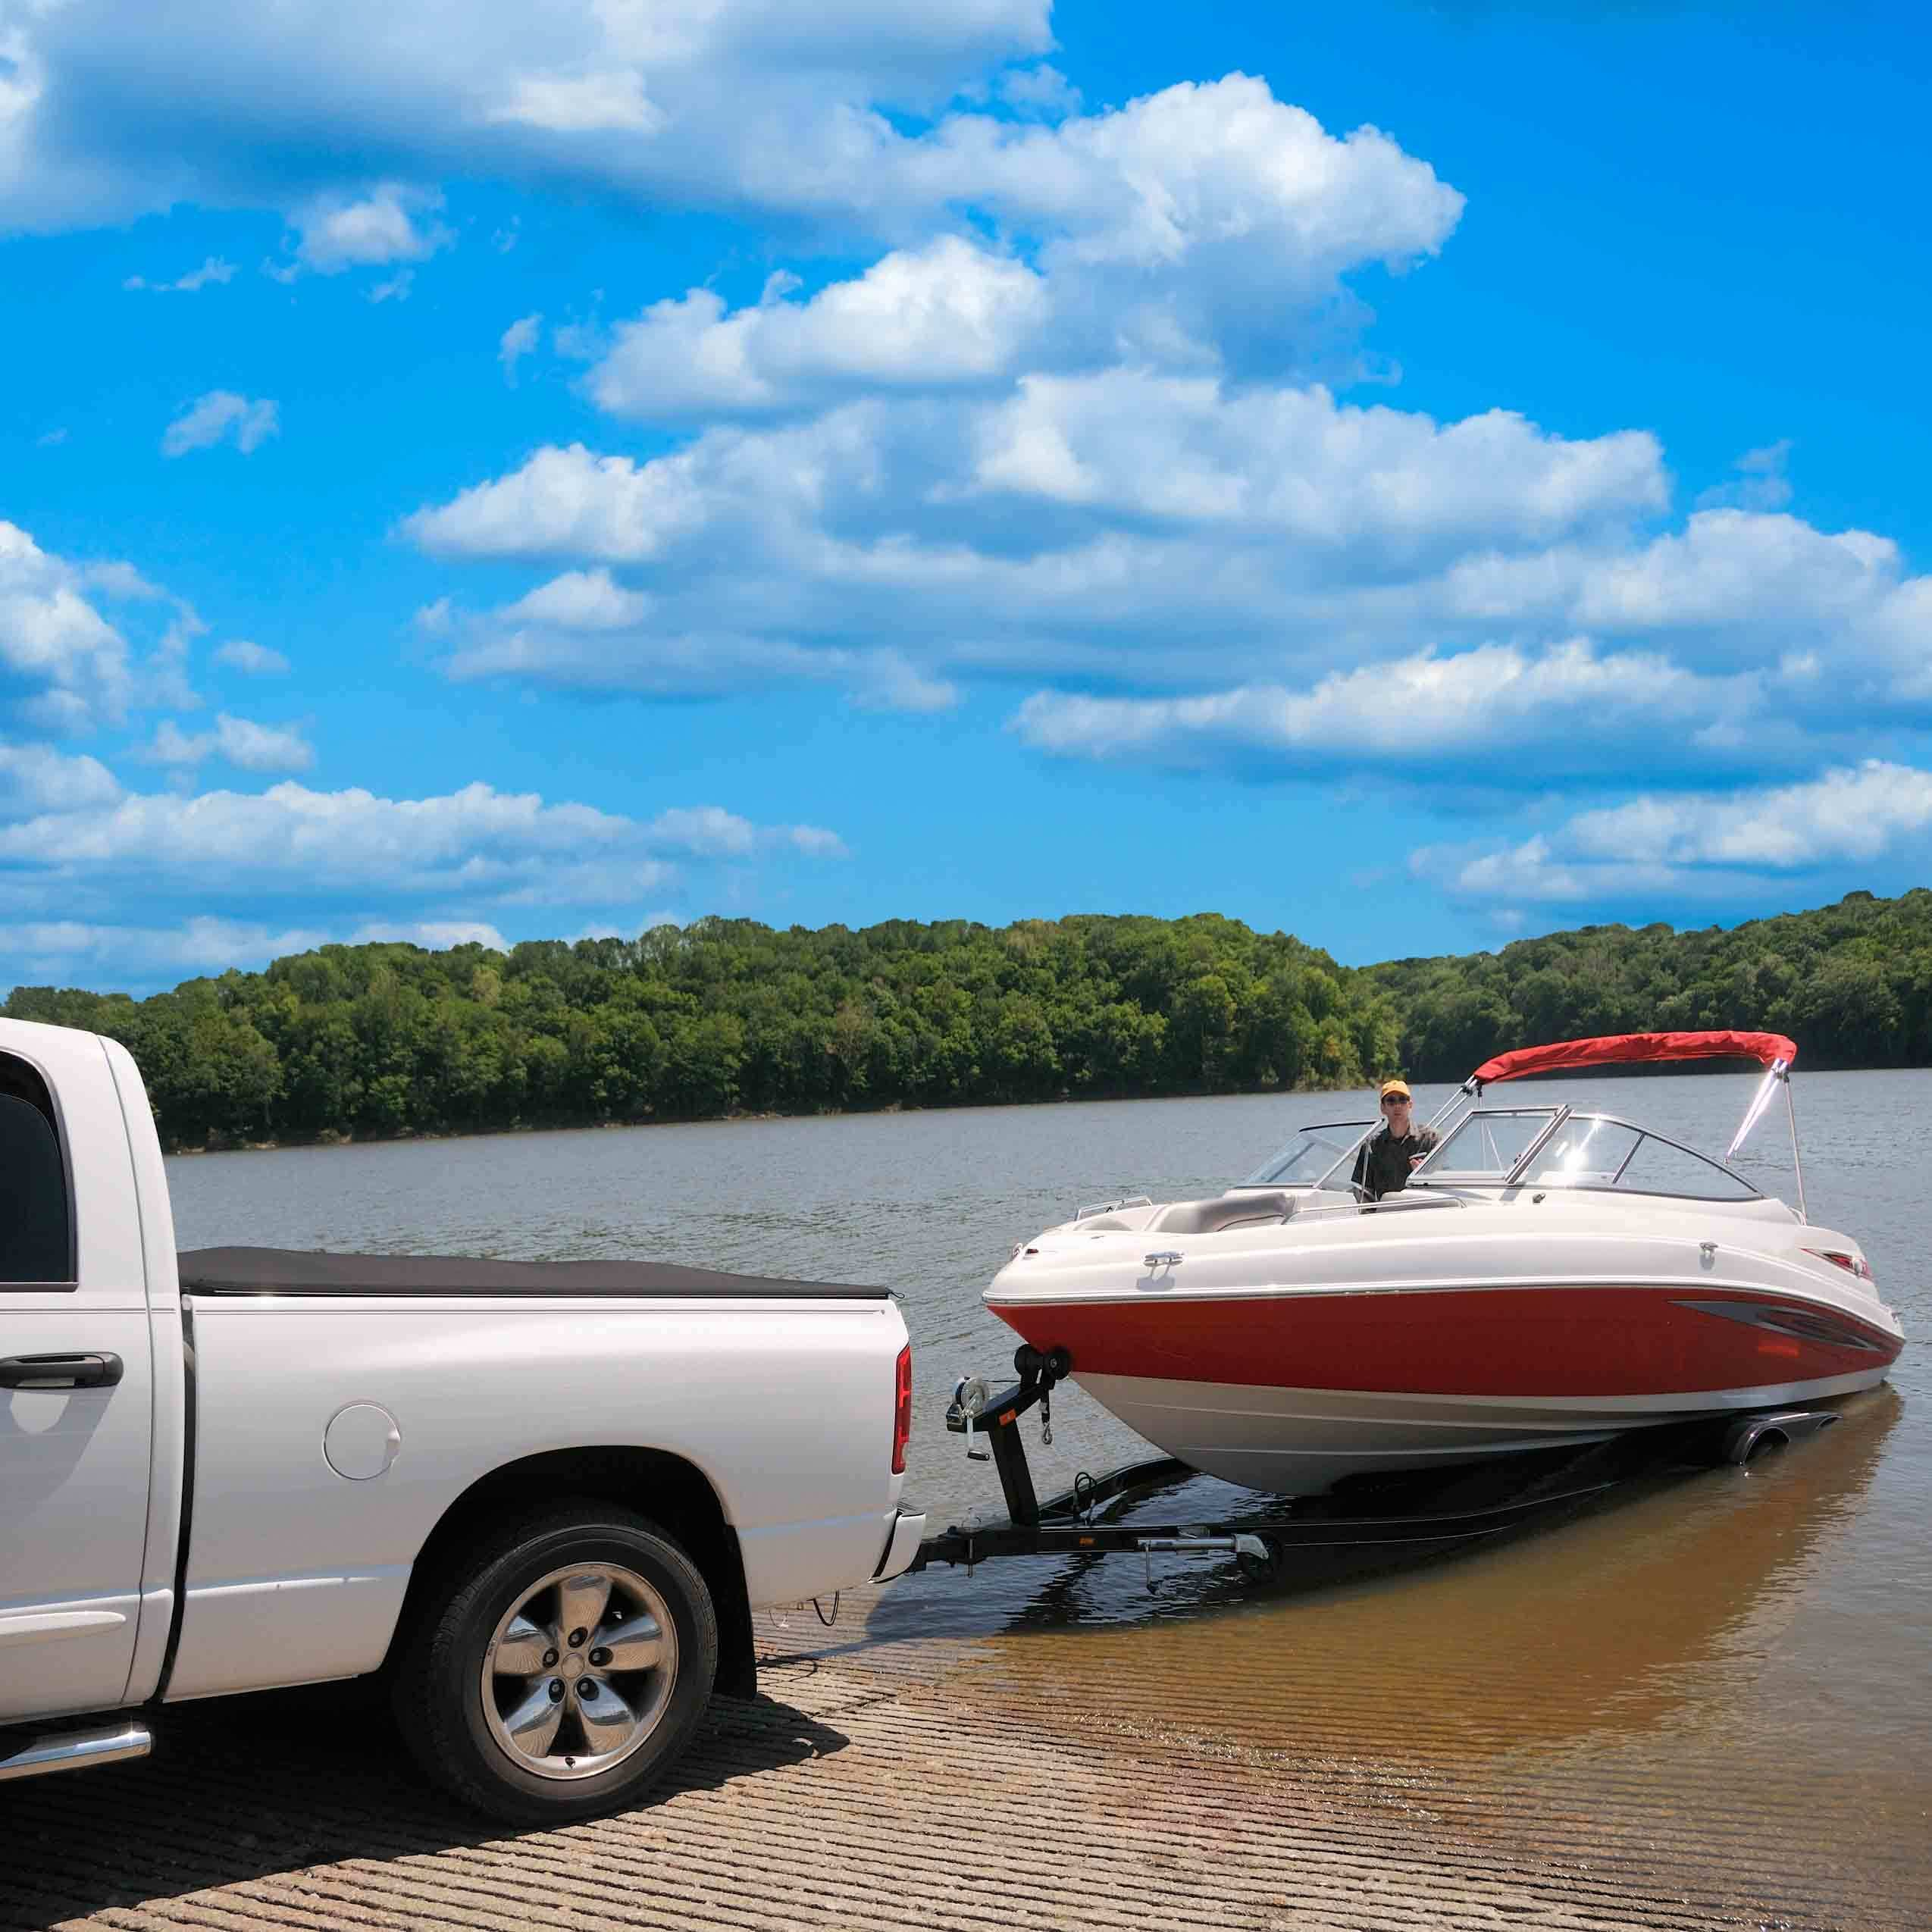 Store boats and water sports equipment